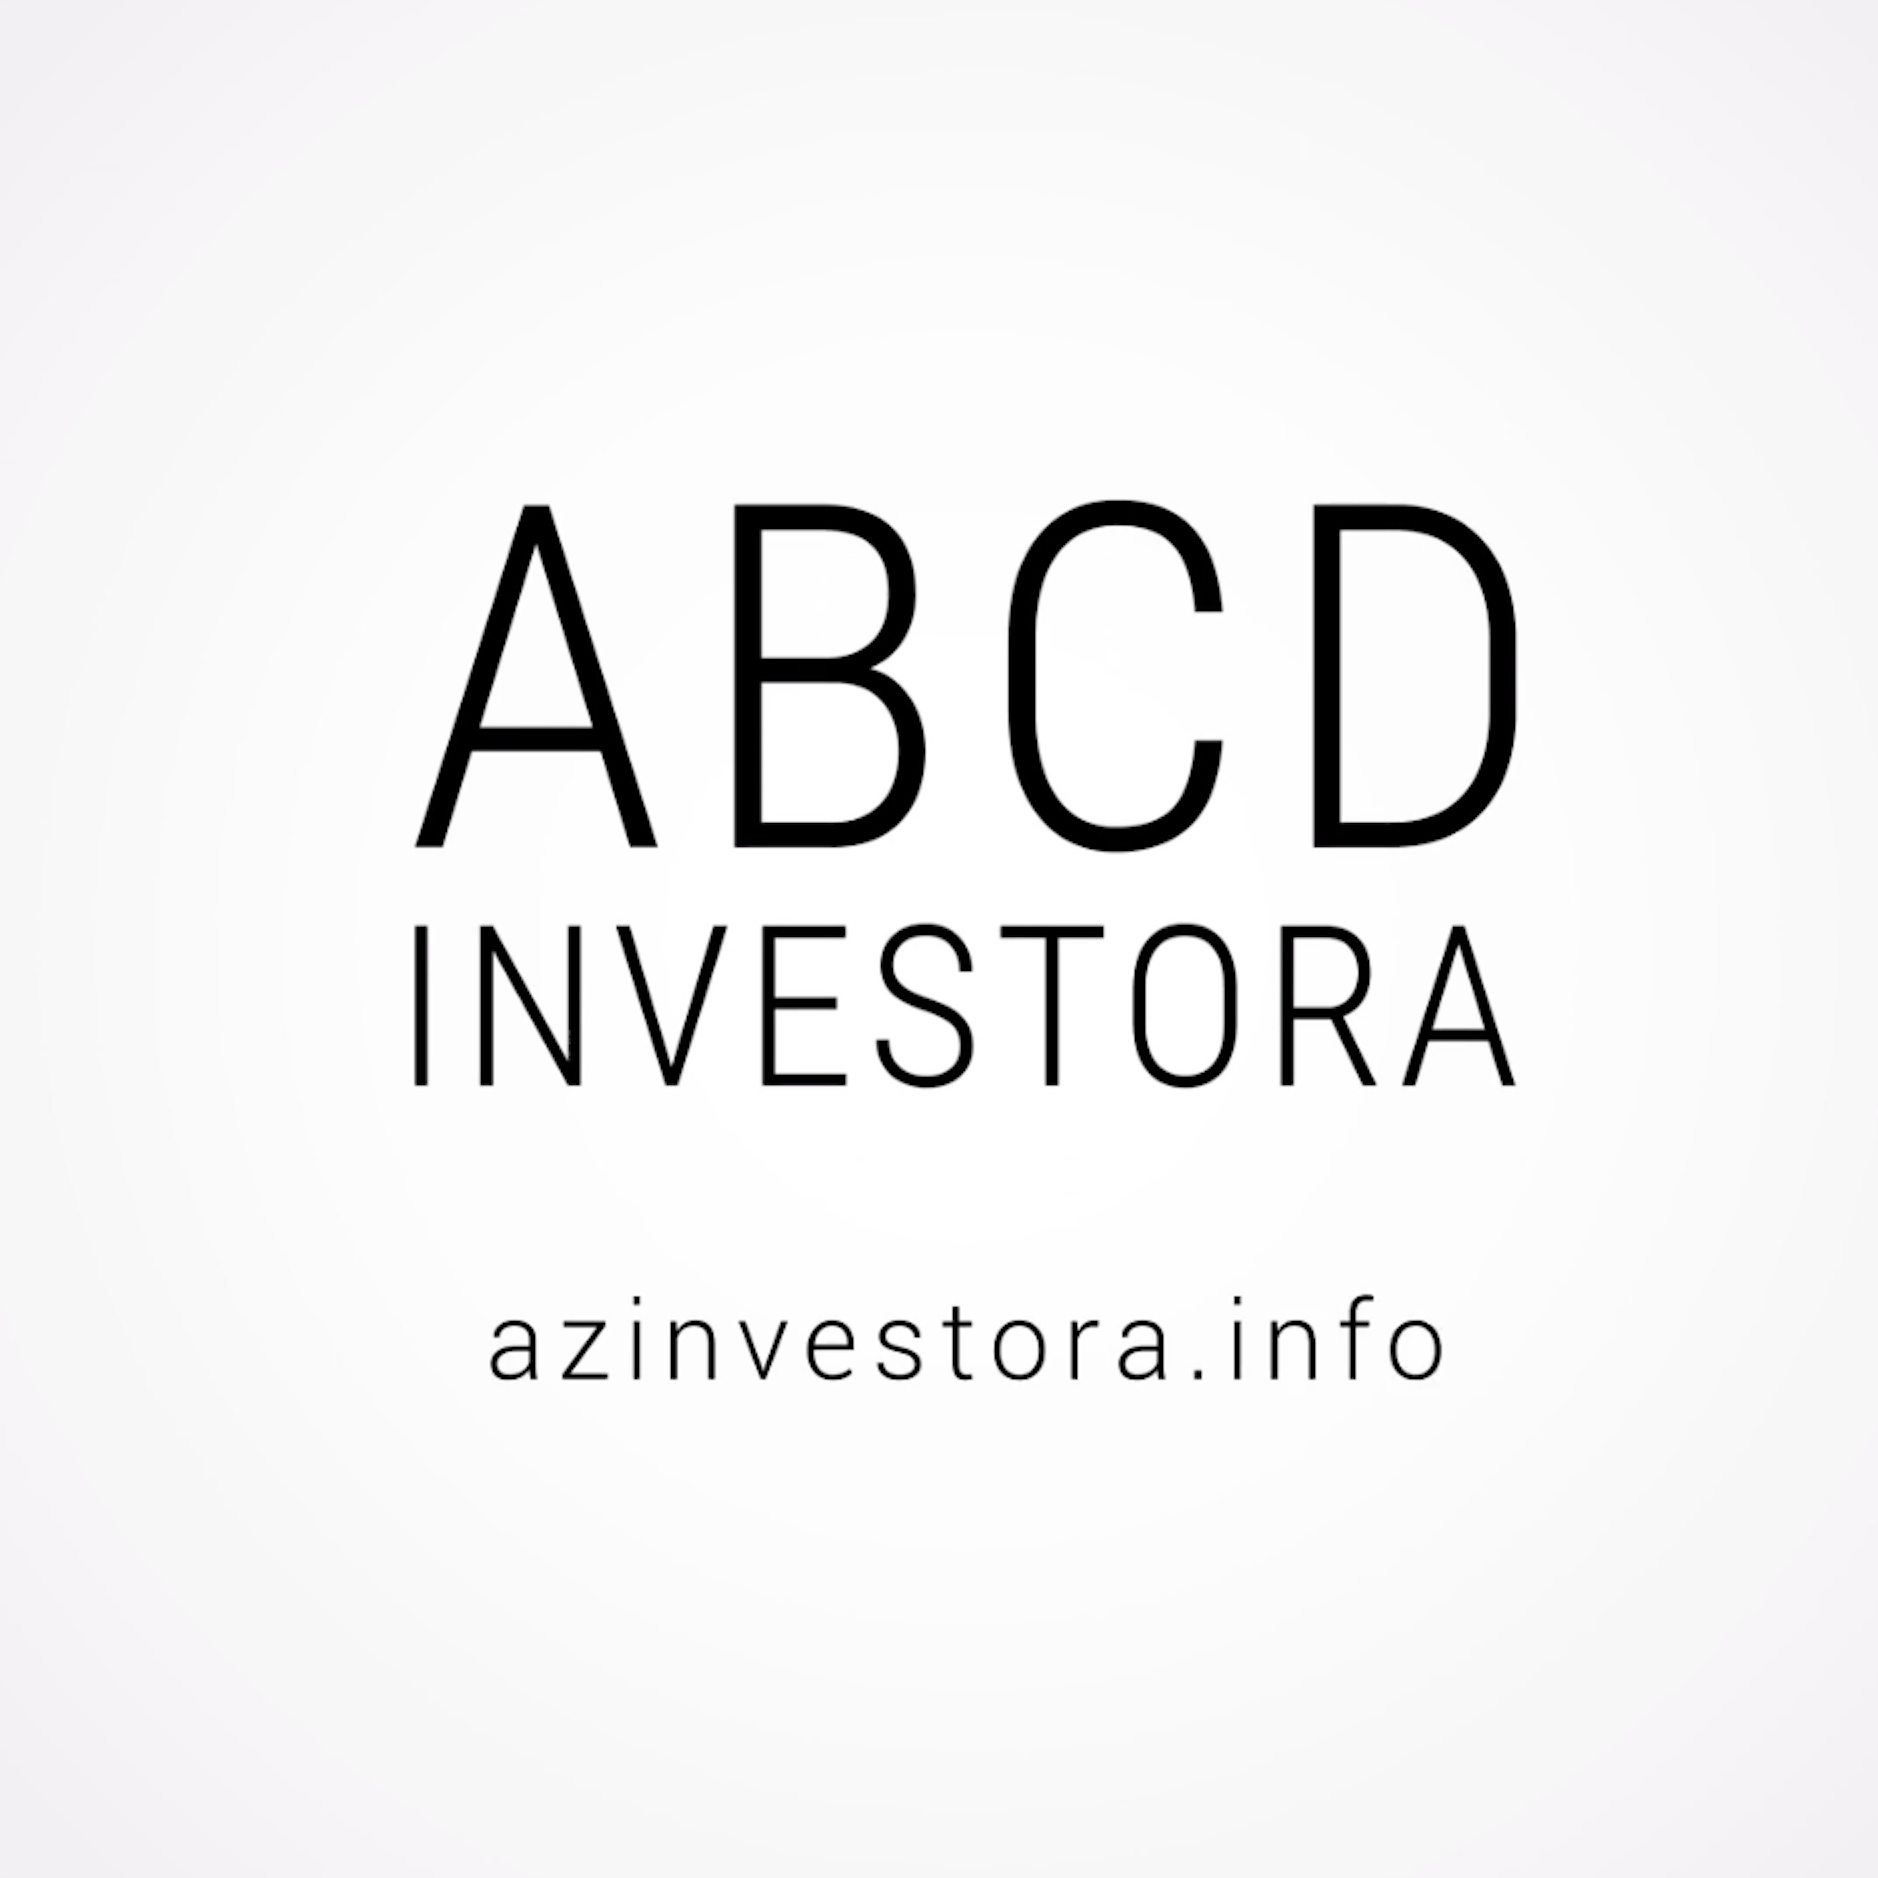 ABCD investora (1b): Everything bubble a vaše portfolio